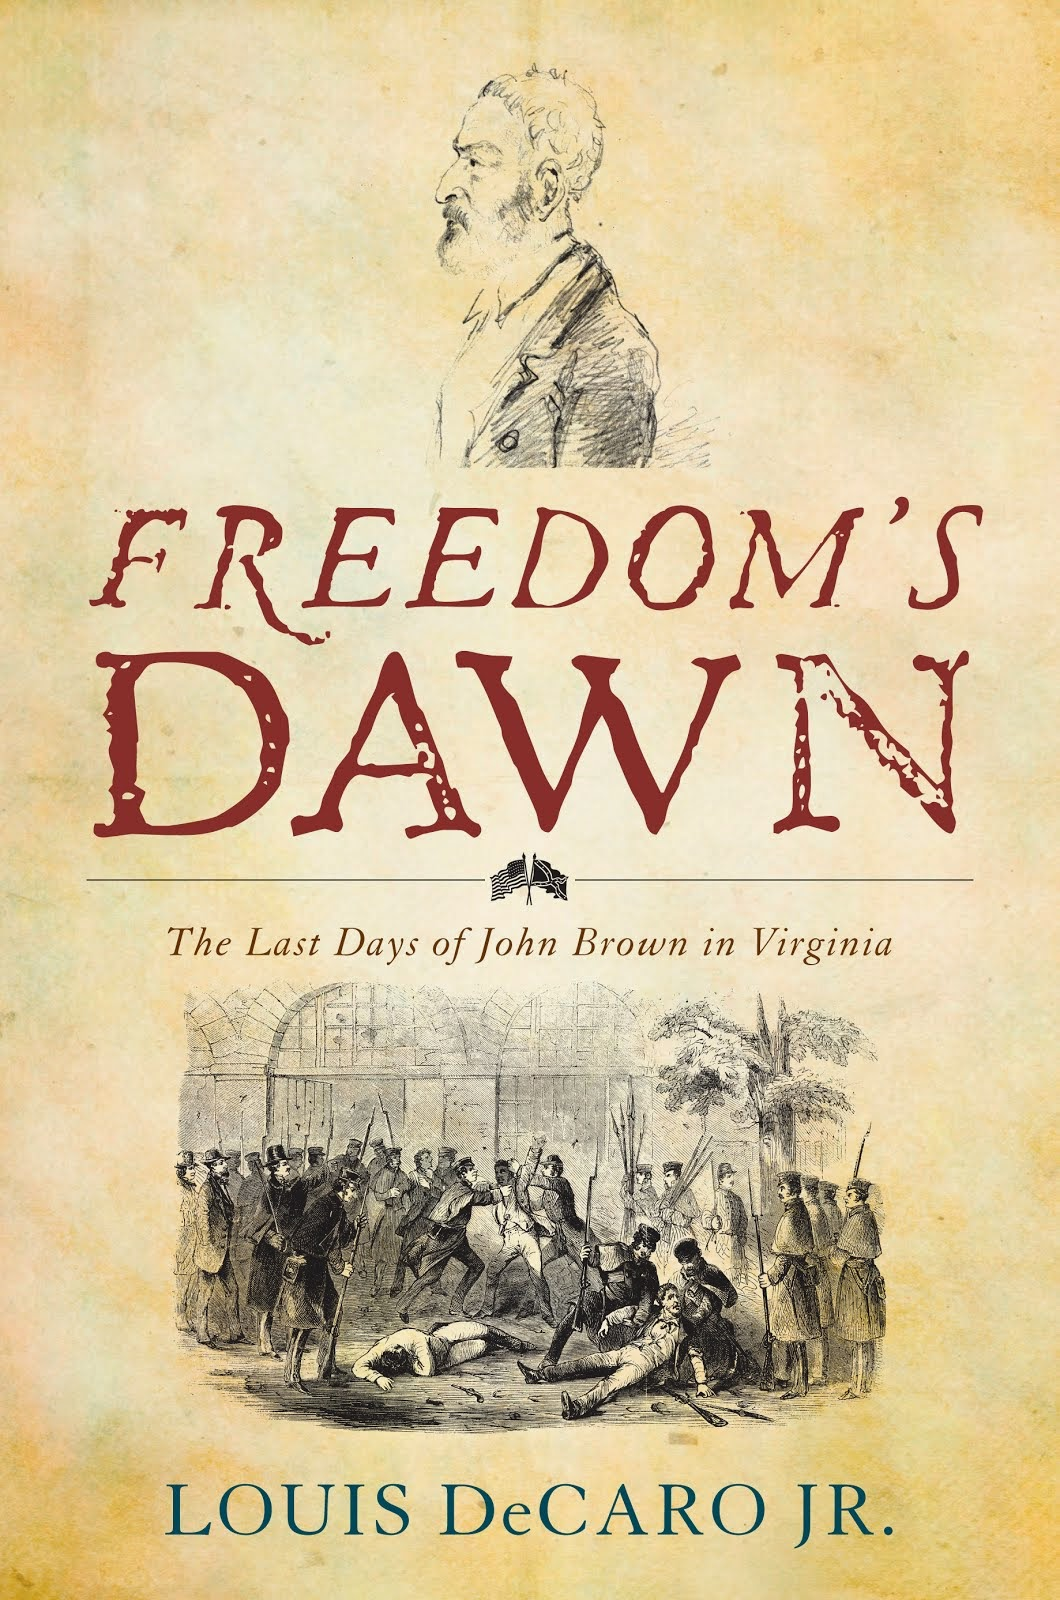 FREEDOM'S DAWN: THE LAST DAYS of JOHN BROWN in VIRGINIA